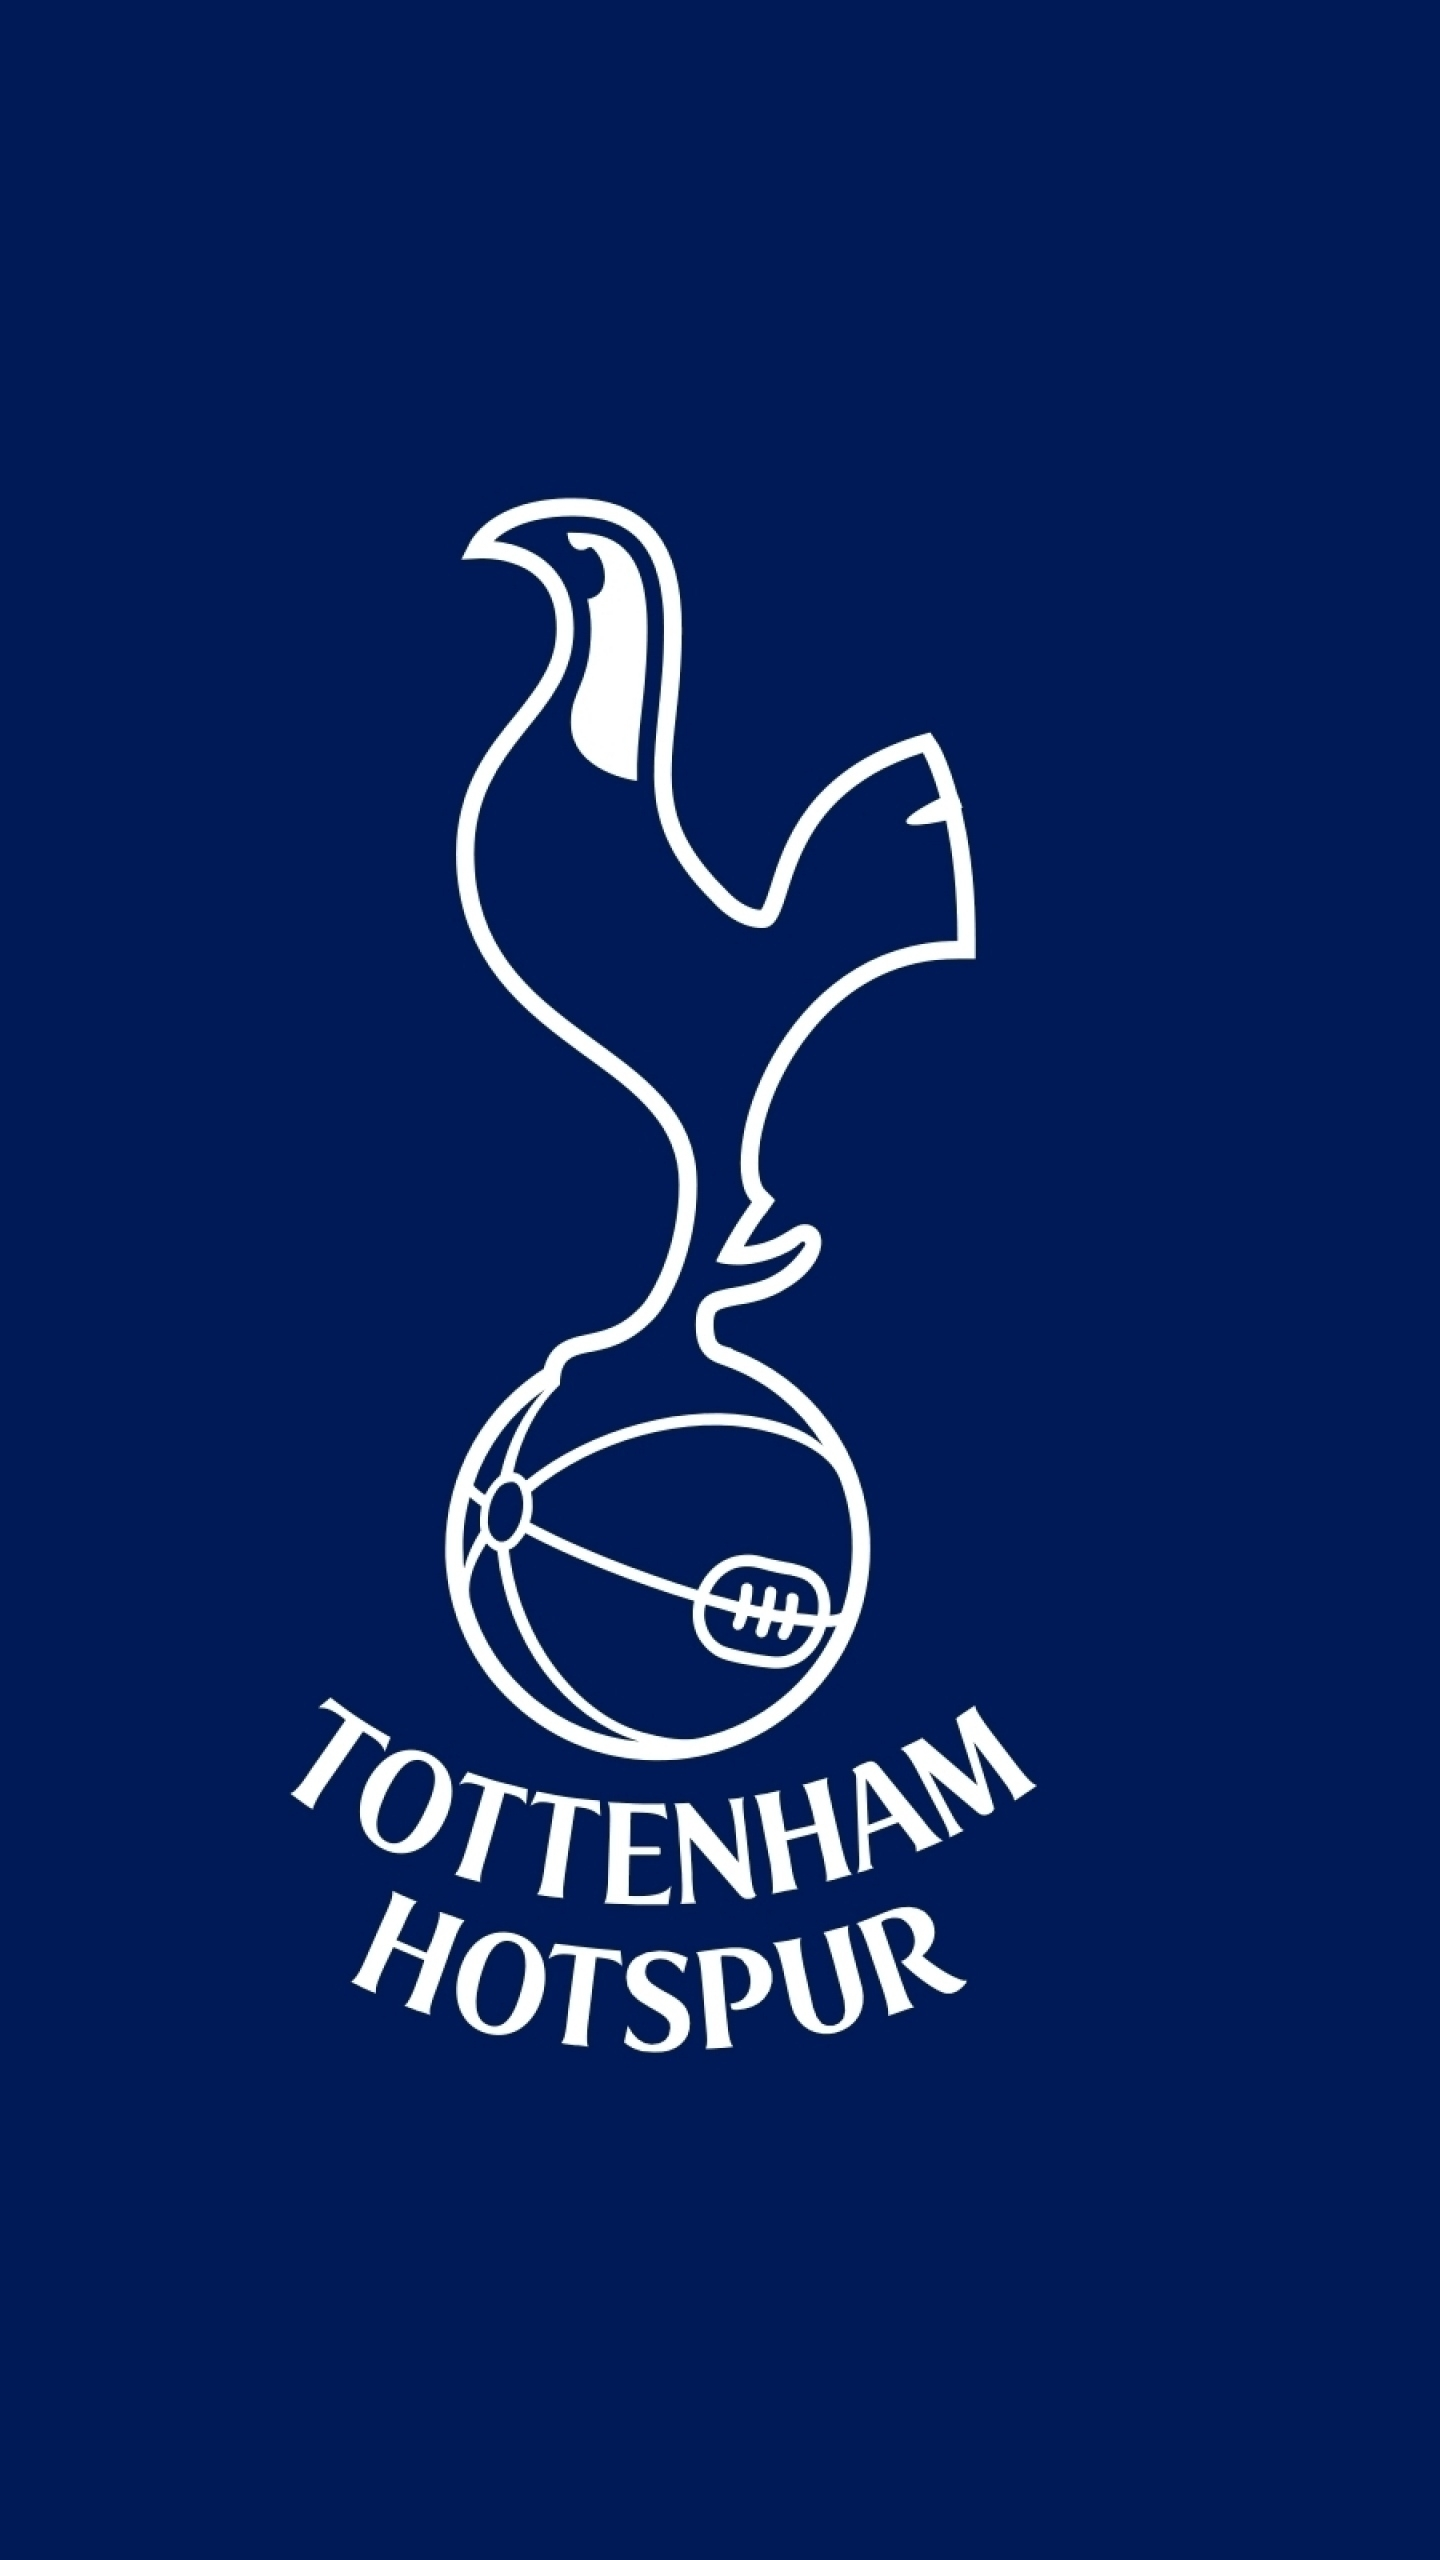 10 Latest Tottenham Hotspur Iphone Wallpaper FULL HD 1920×1080 For PC Background